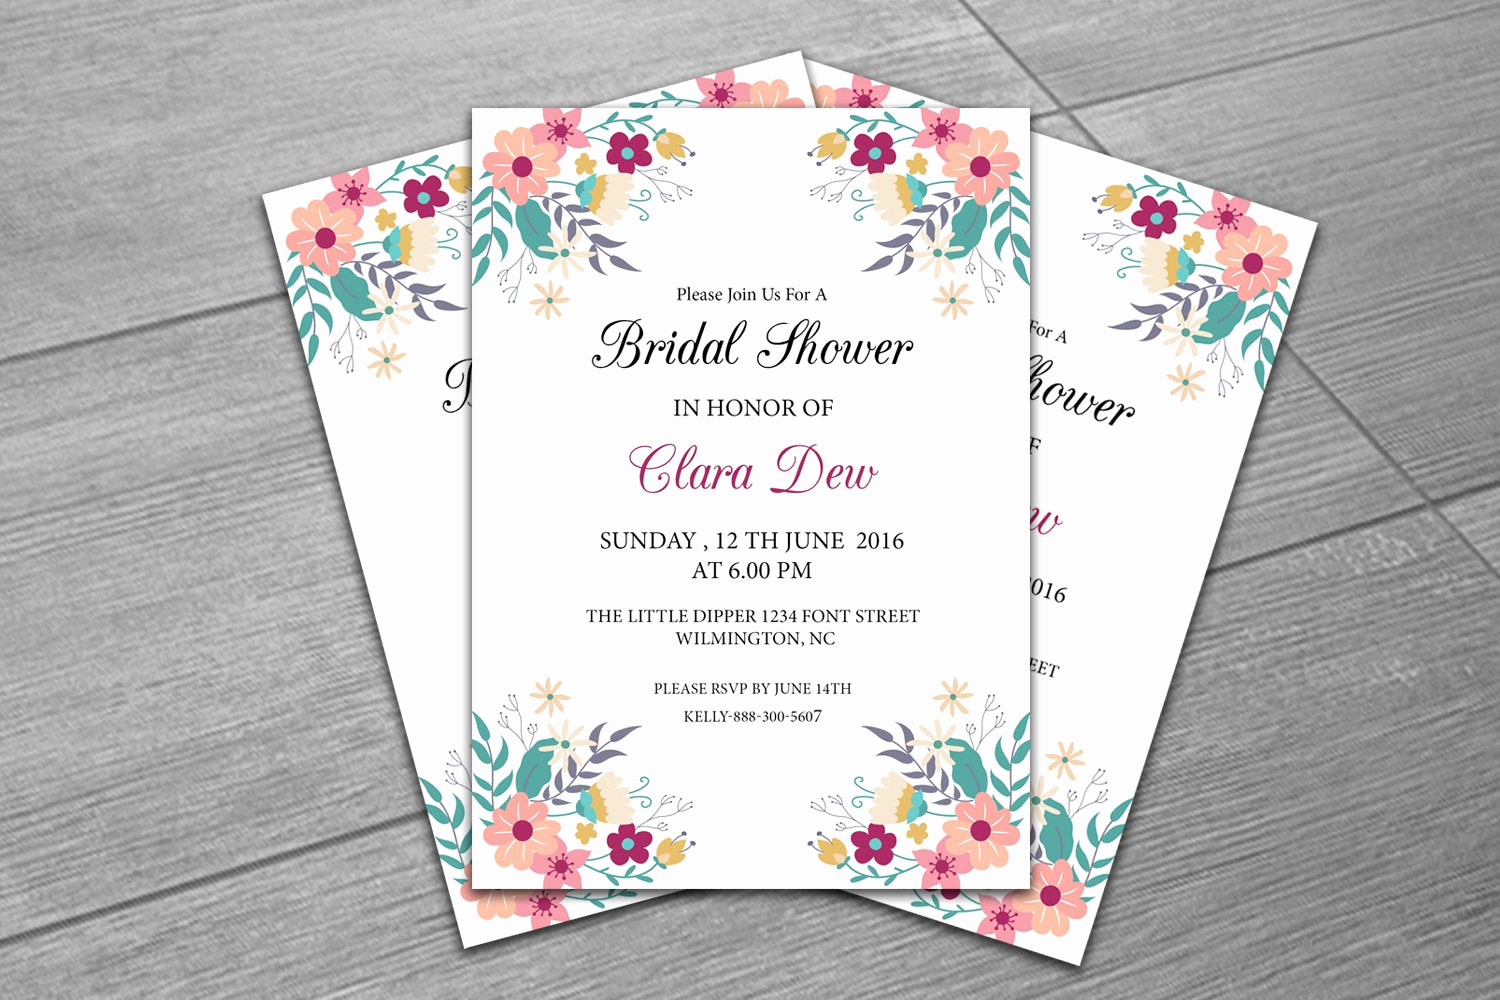 Bridal Shower Invite Template Luxury Sale Bridal Shower Invitation Template Diy Wedding Shower